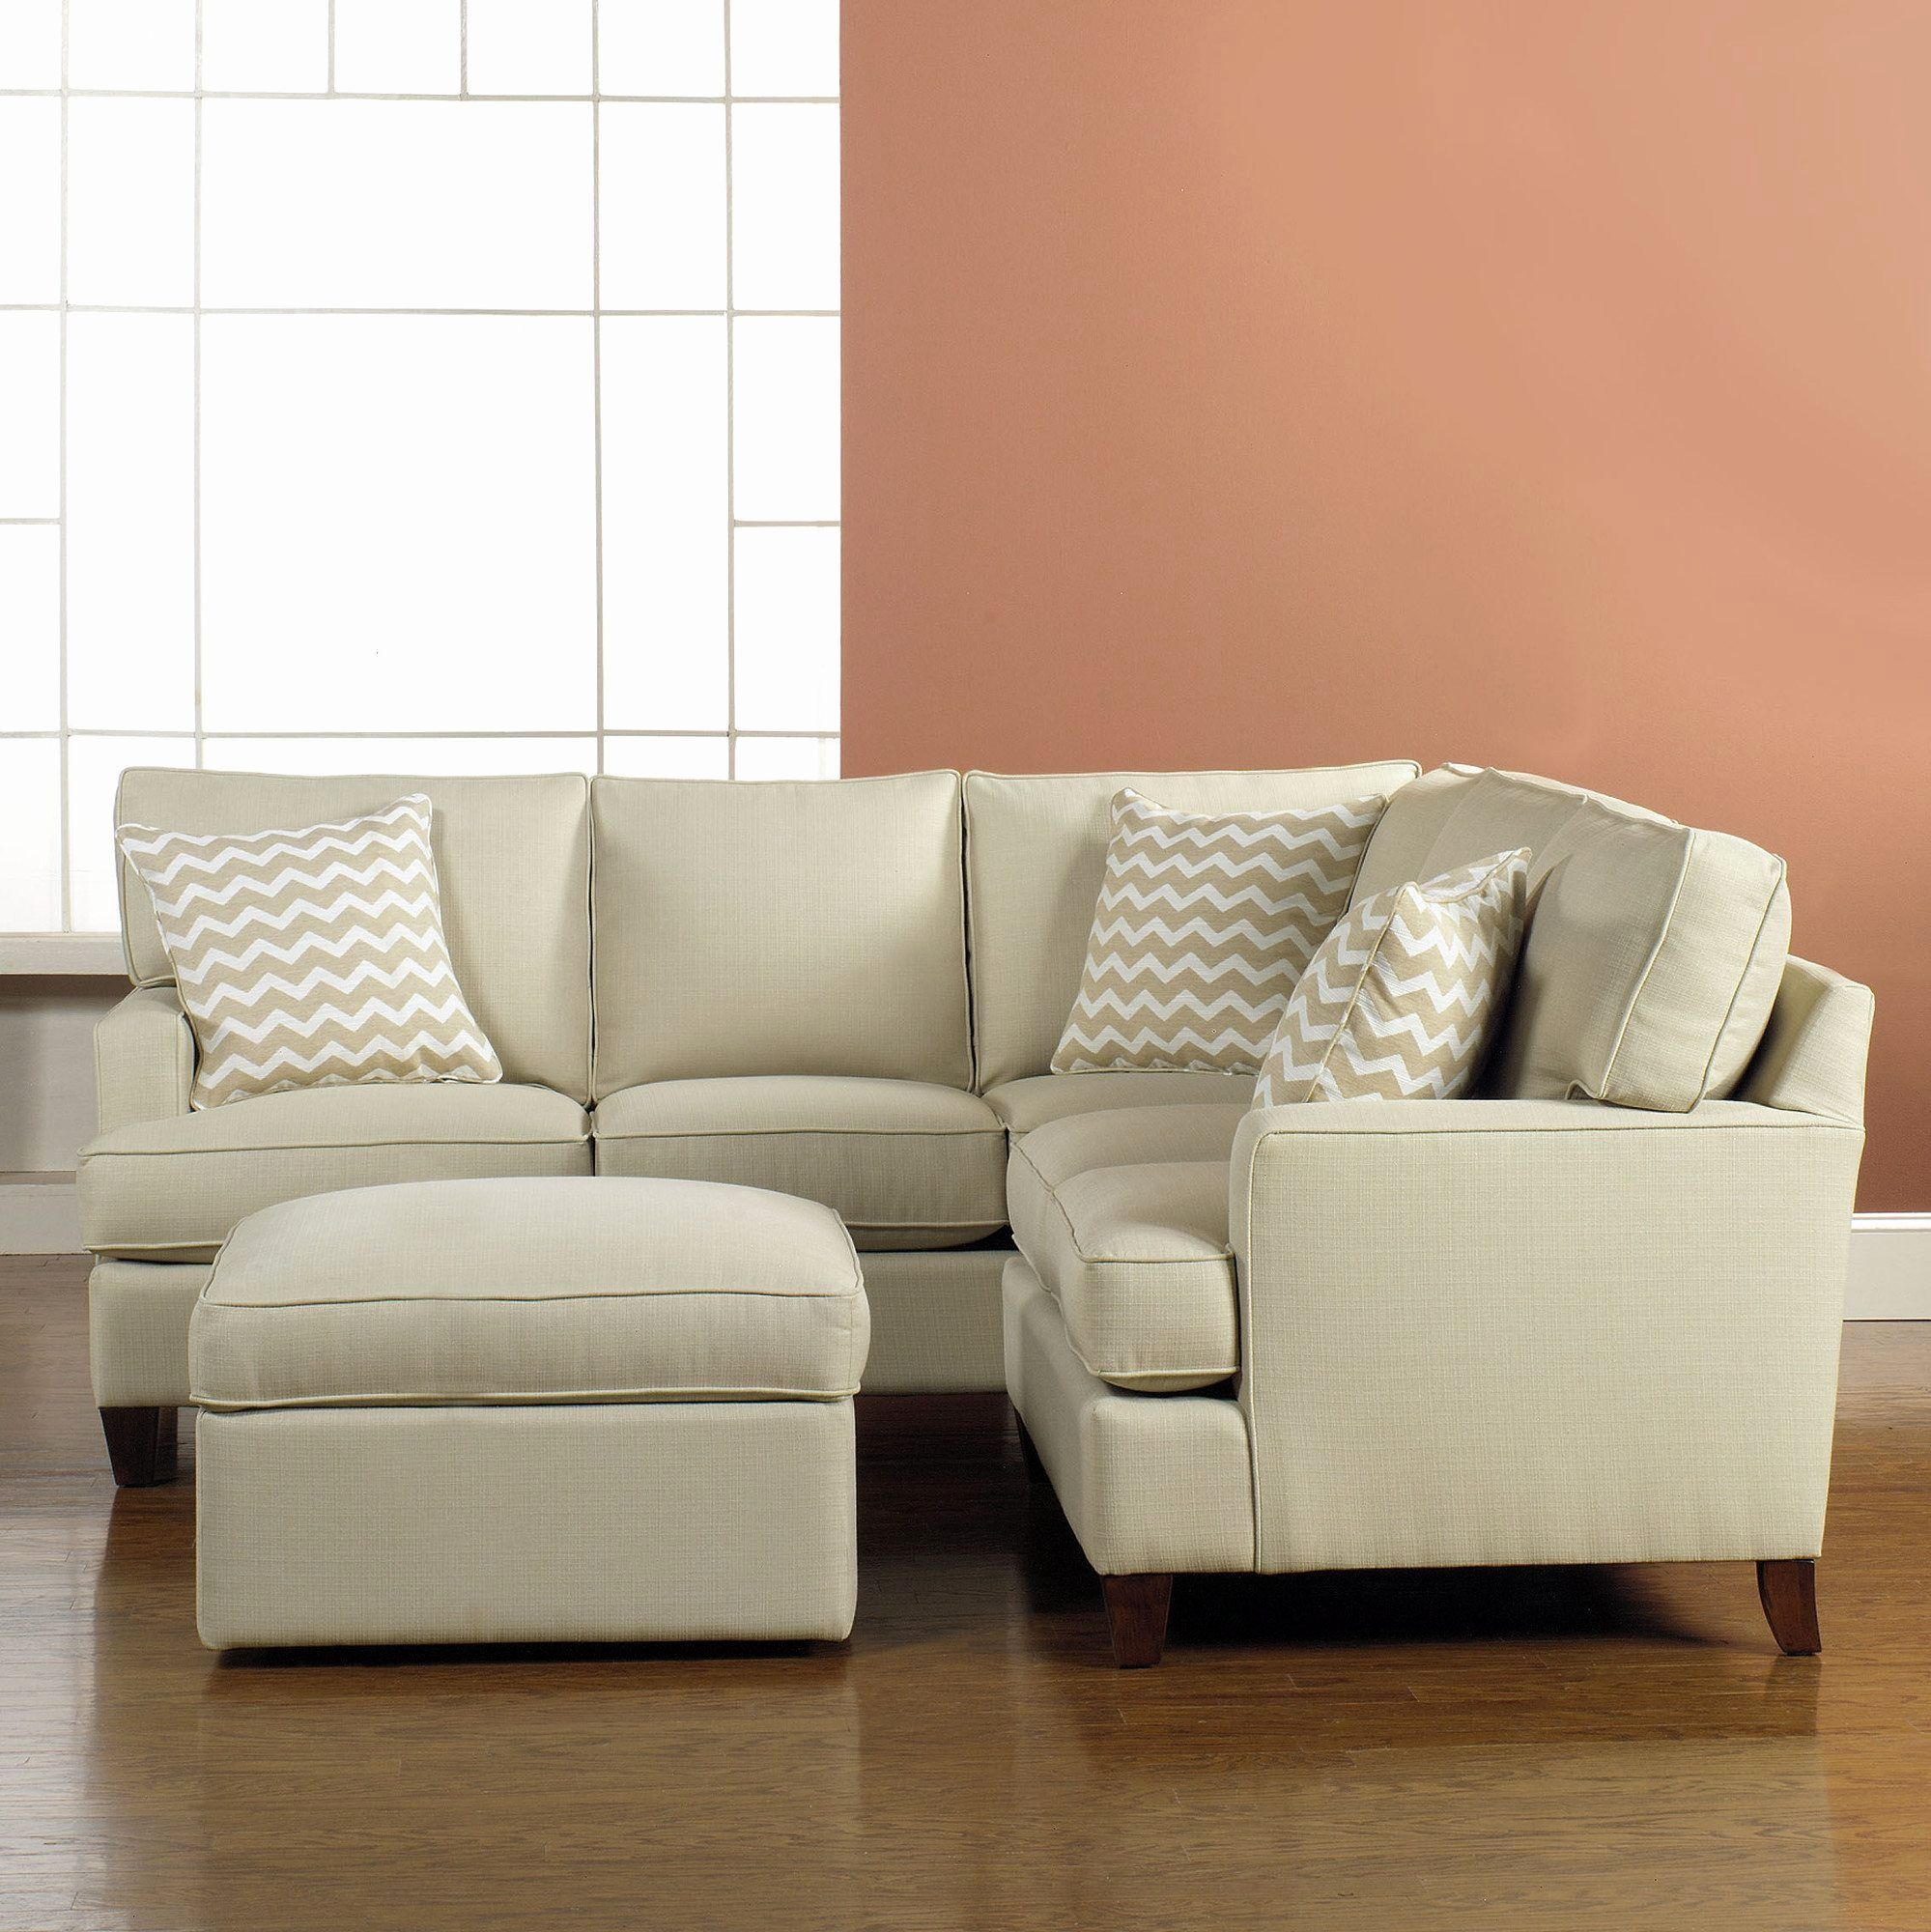 Best Of Small Apartment Sectional sofa Image sofas awesome ...